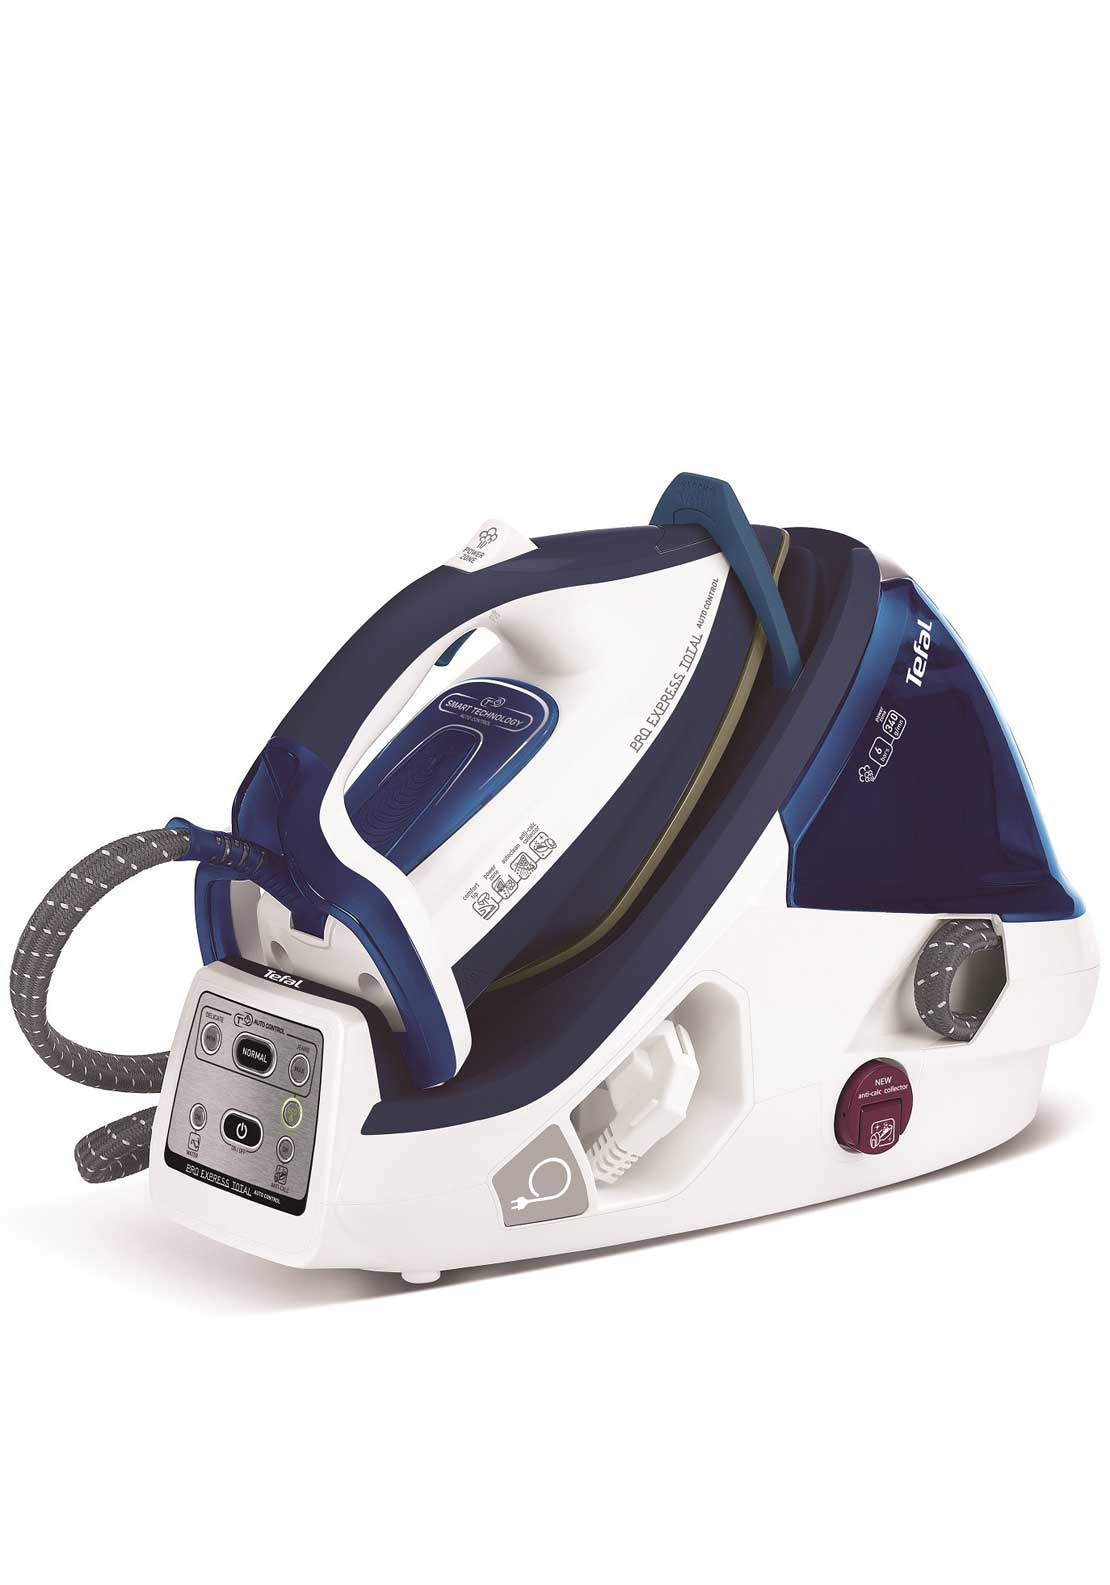 Tefal Pro Express Total Auto Control Iron, White & Blue